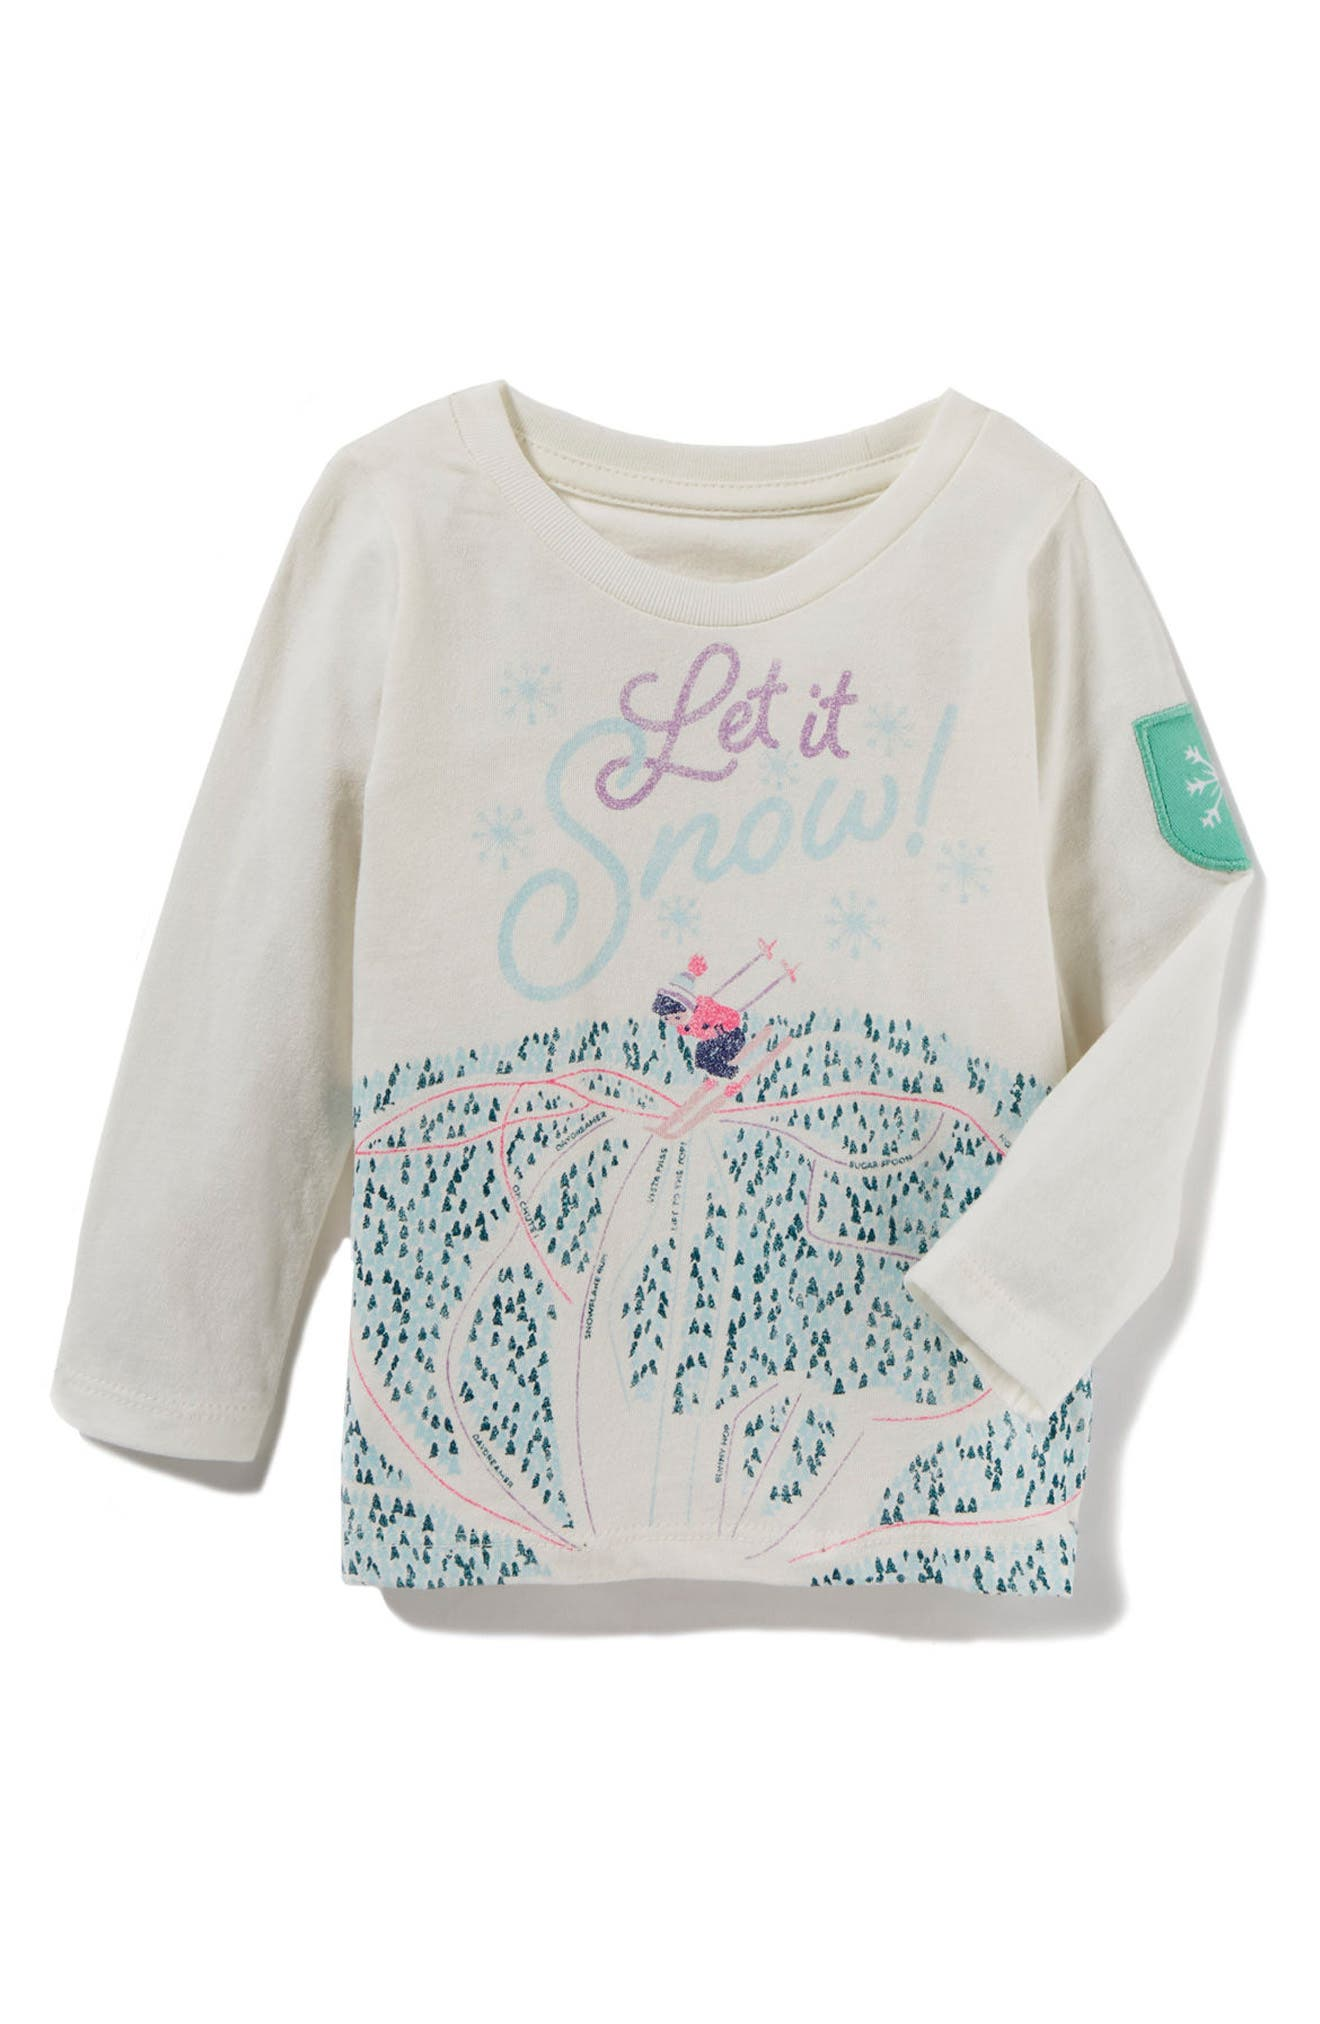 Let It Snow Graphic Tee,                         Main,                         color, 905